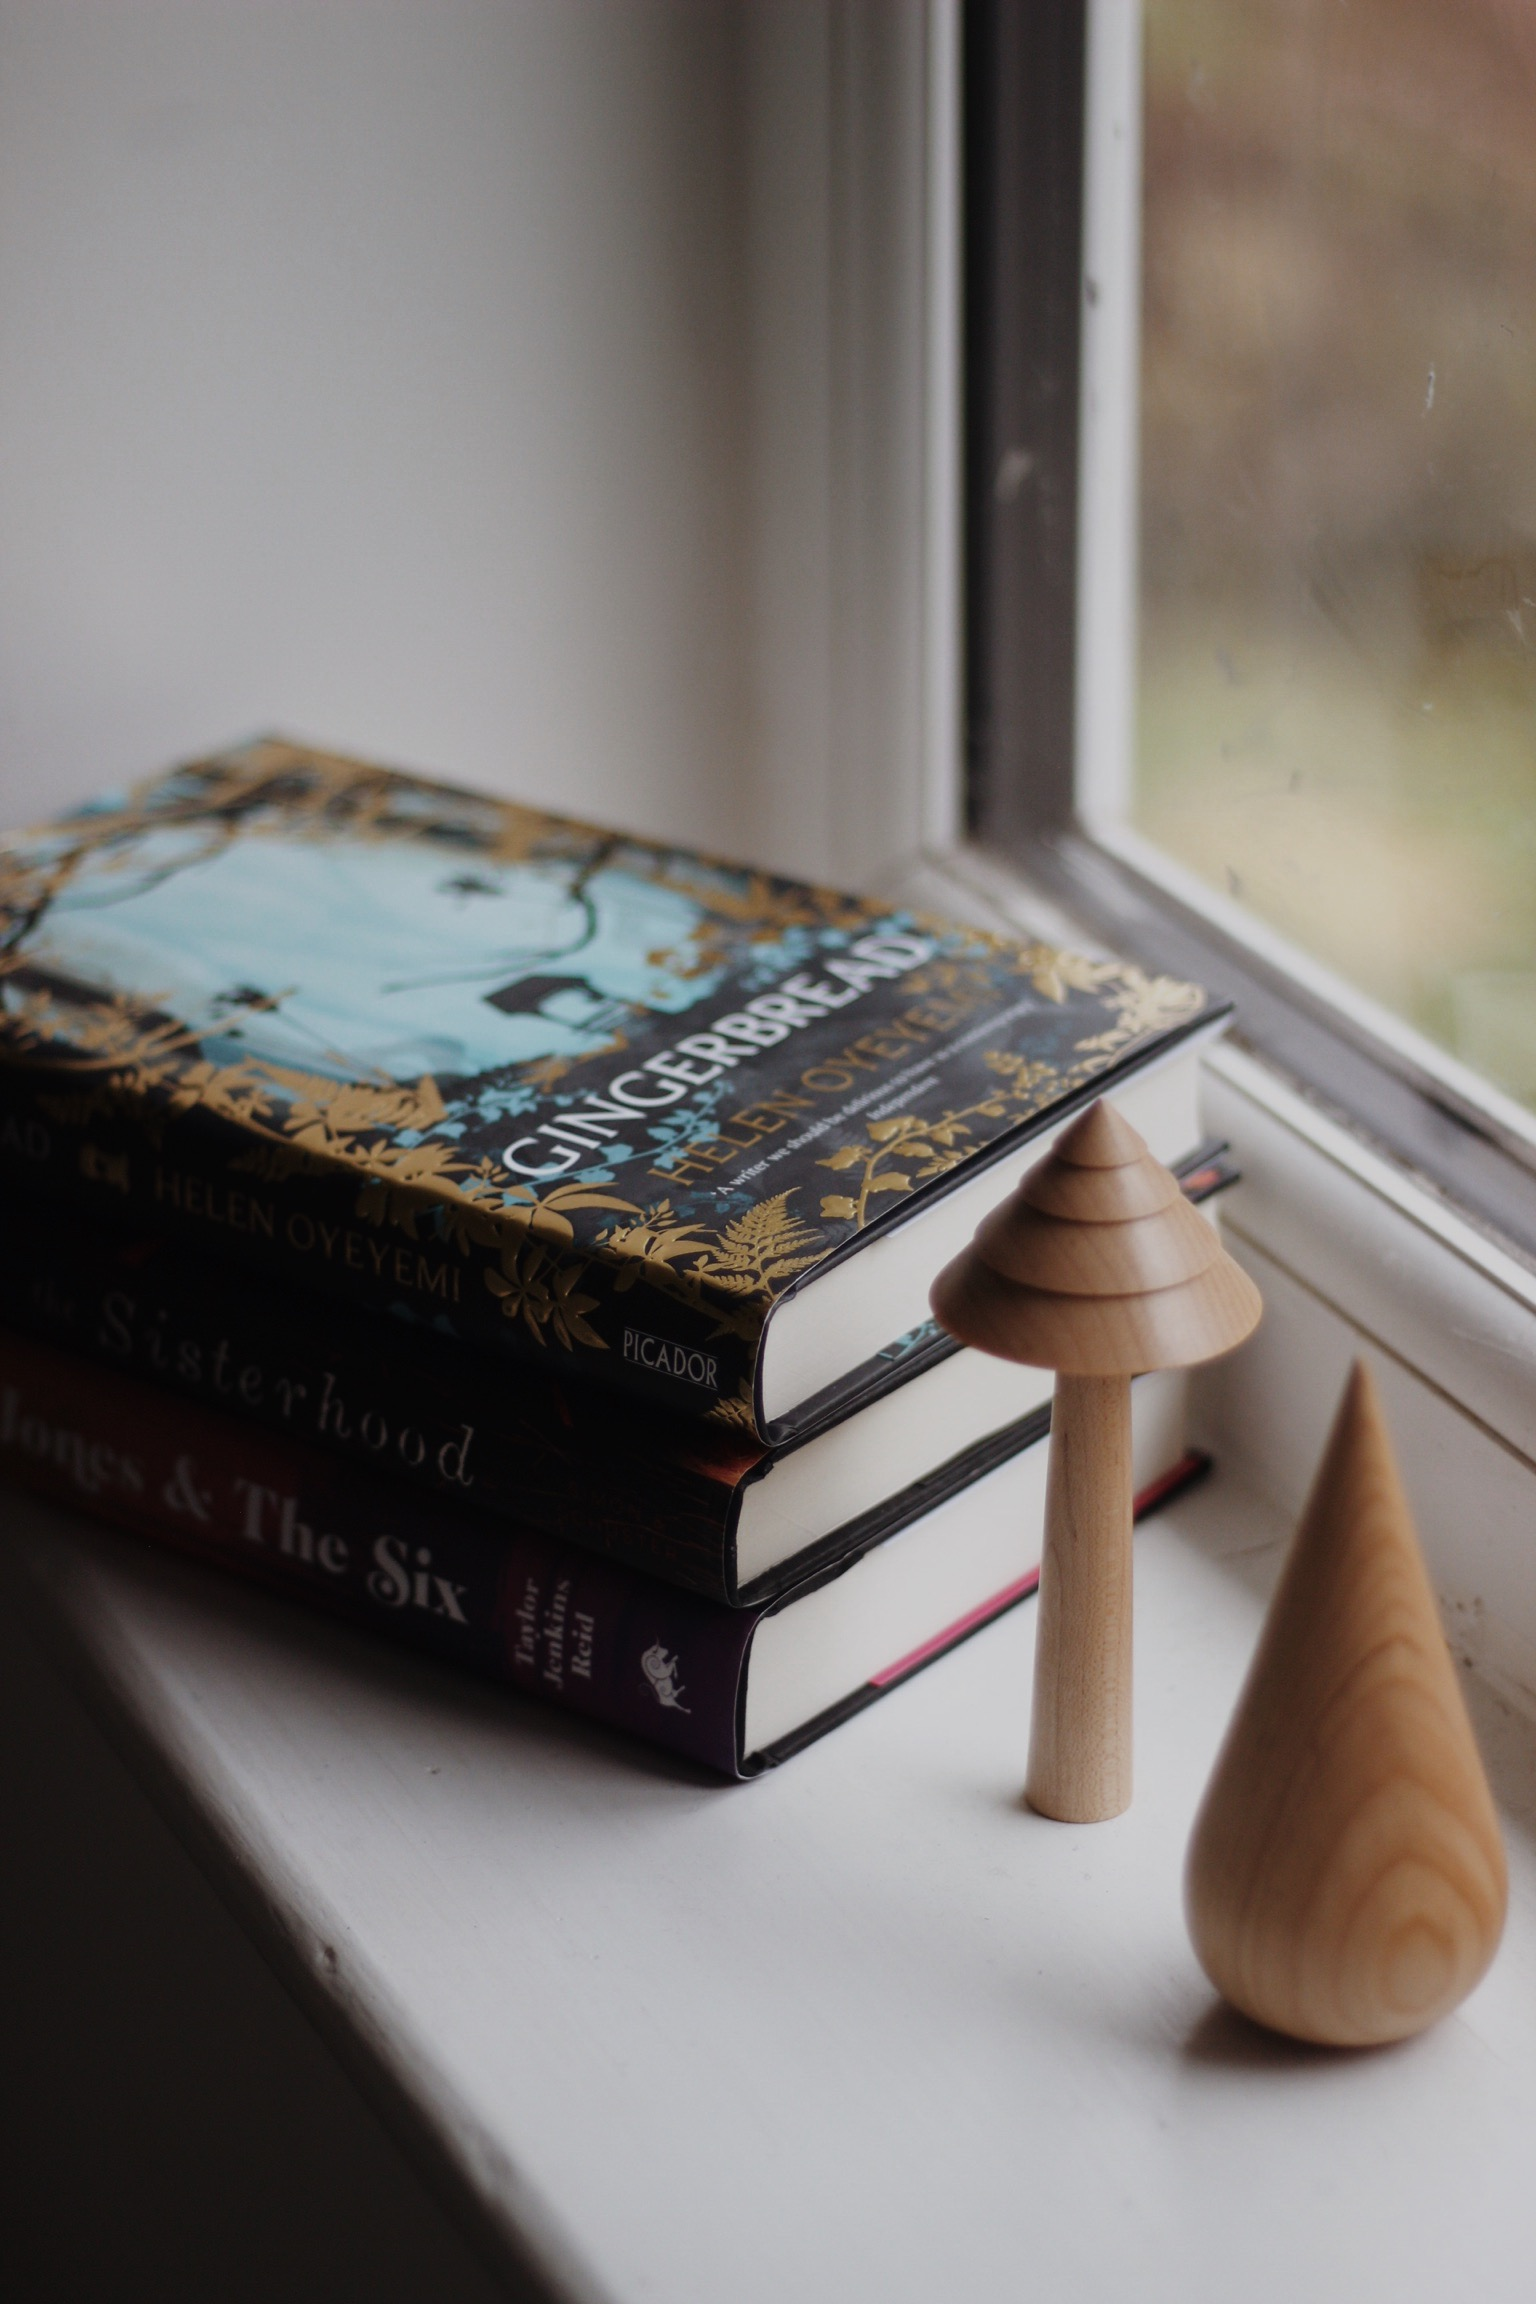 Pile of books on window sill